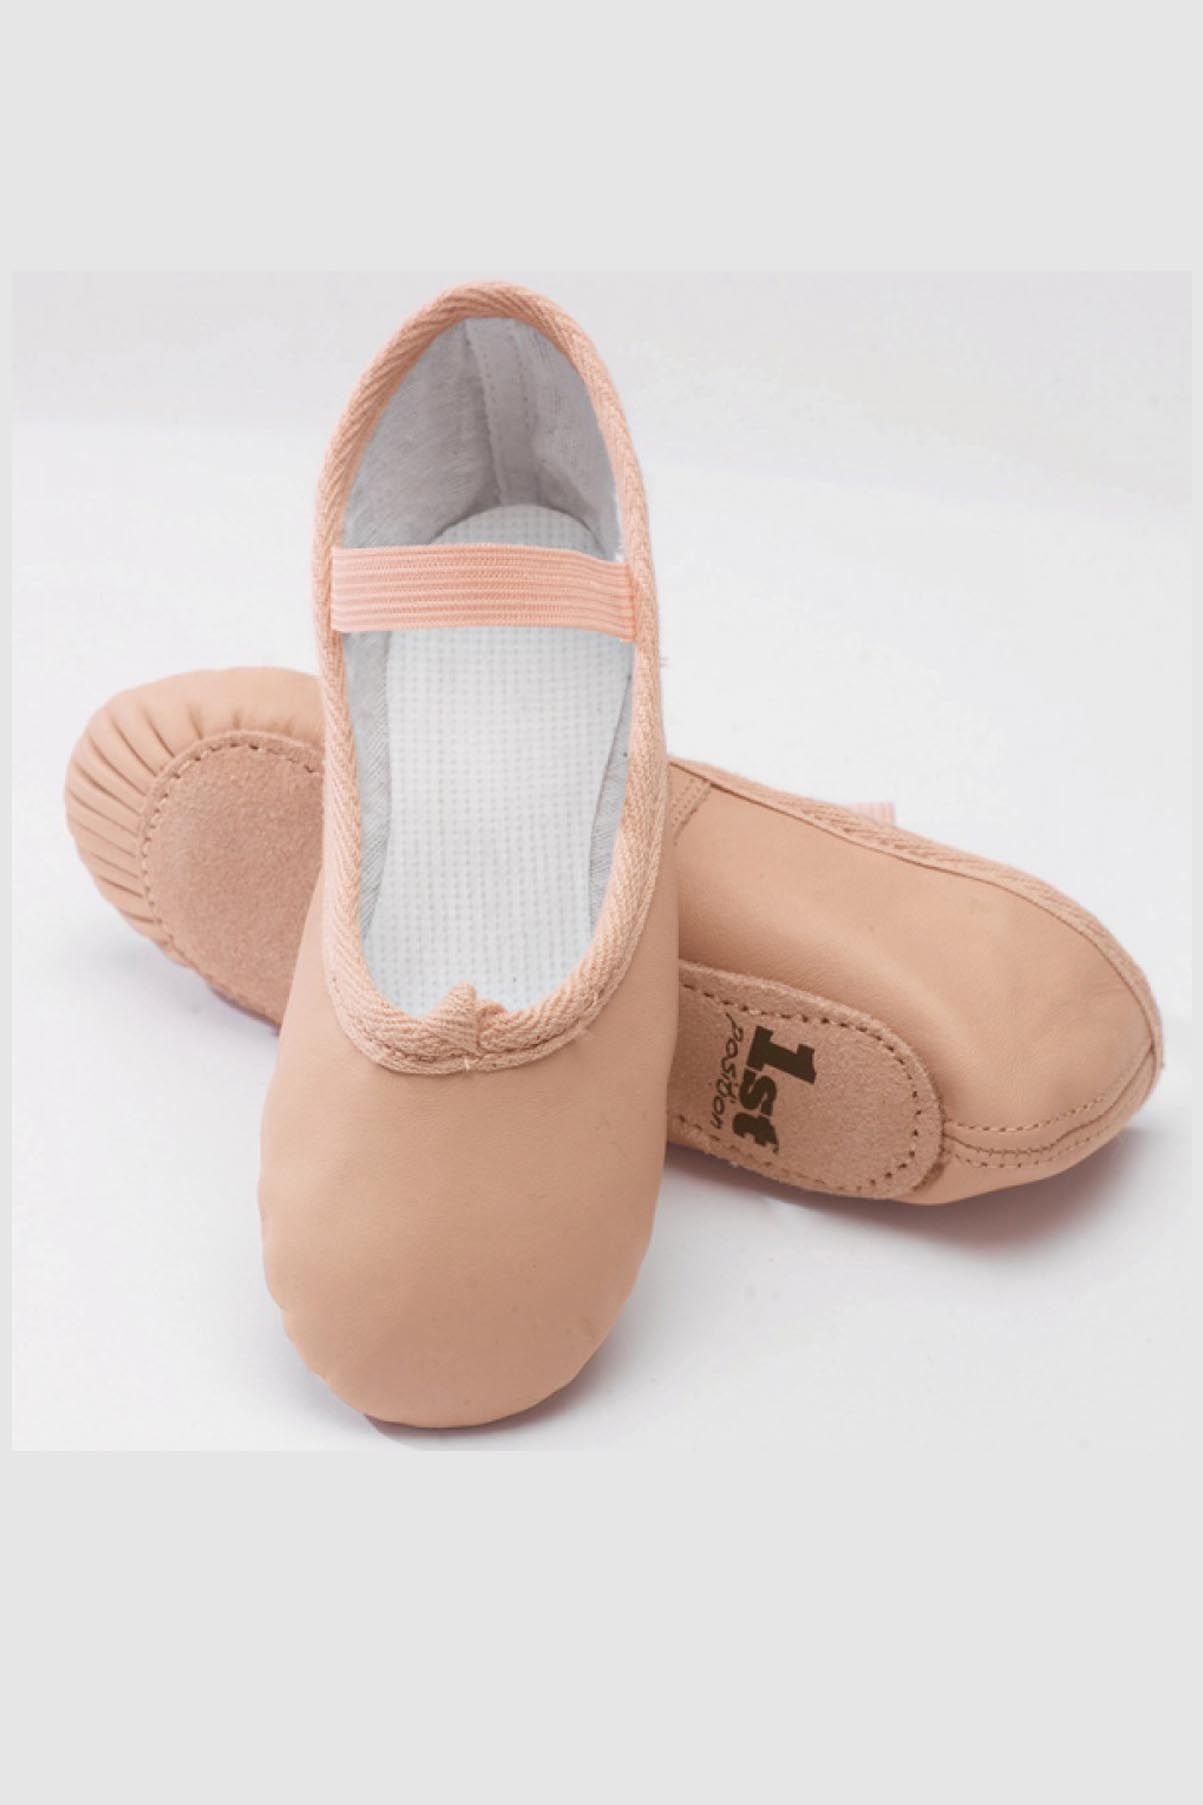 Uniform Pink Ballet Shoe (IDS LBS)